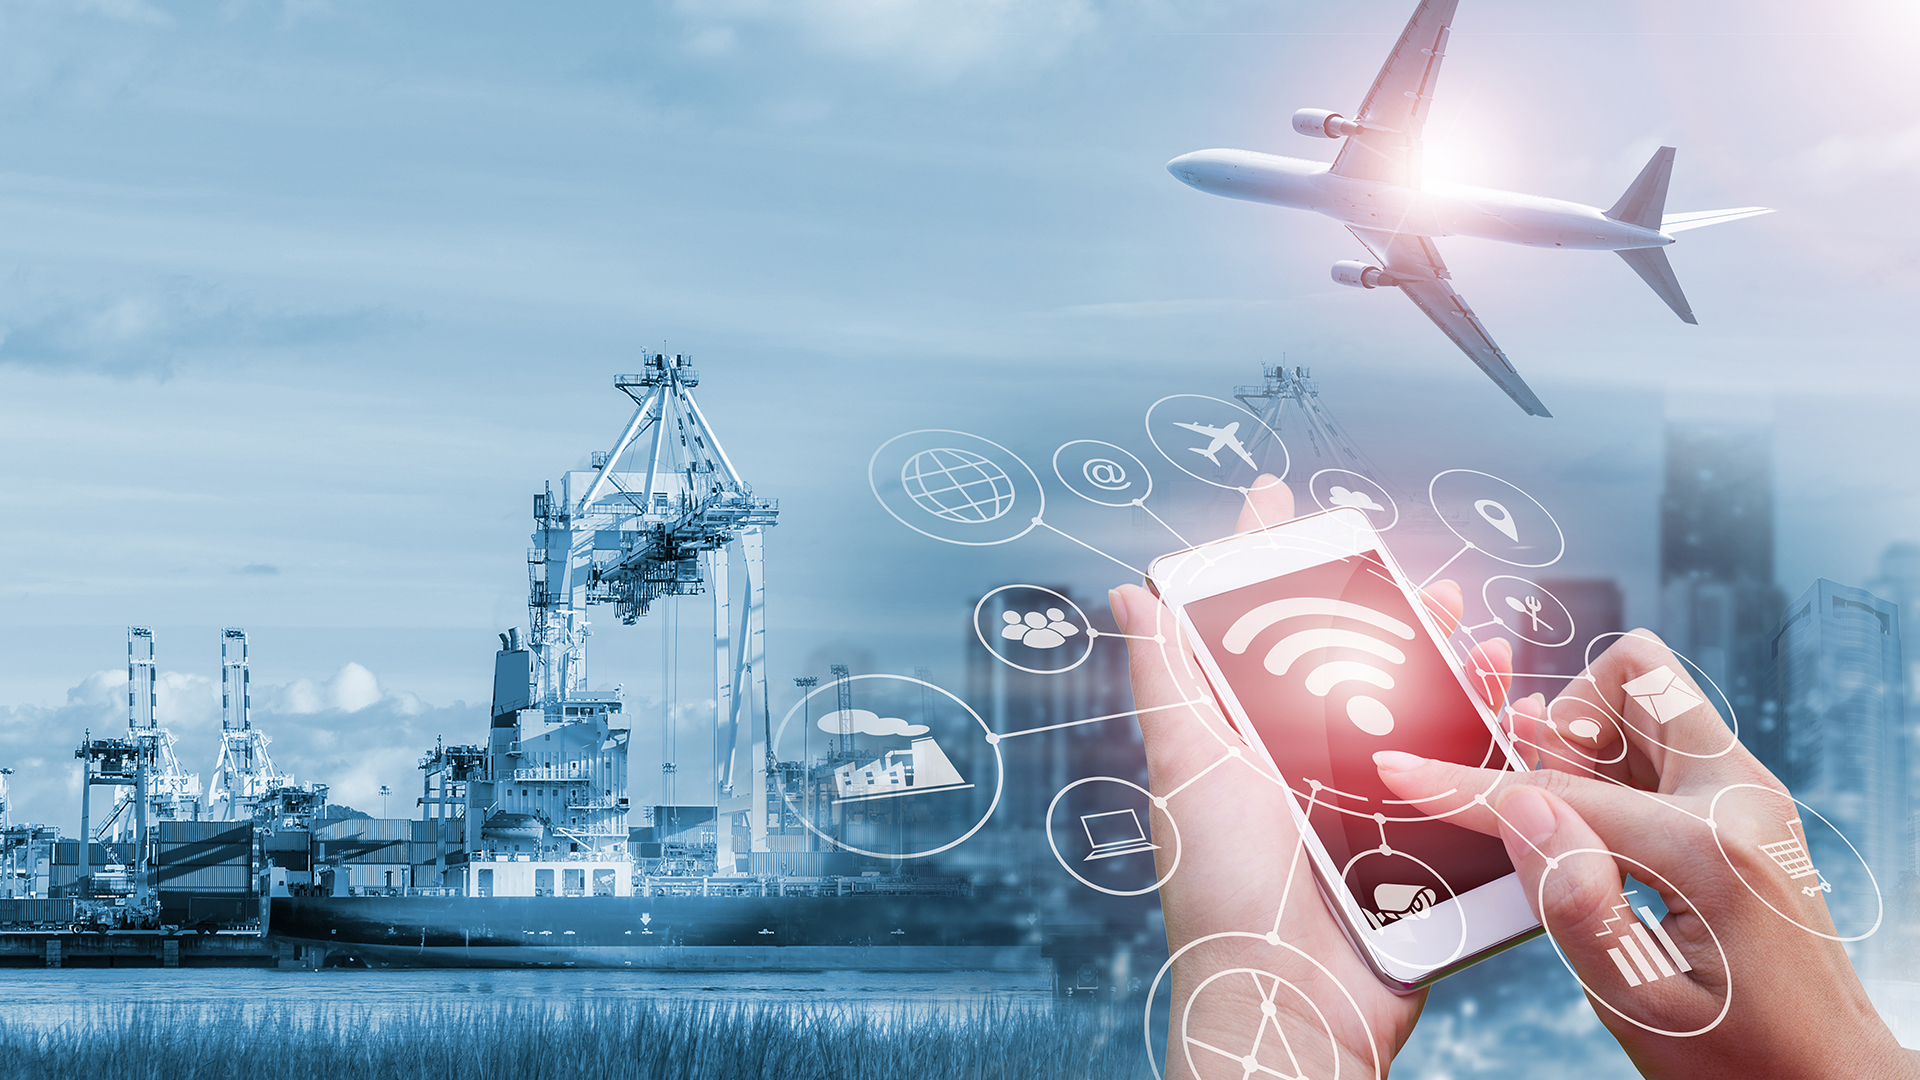 Smart Shipping with Satellite Communication